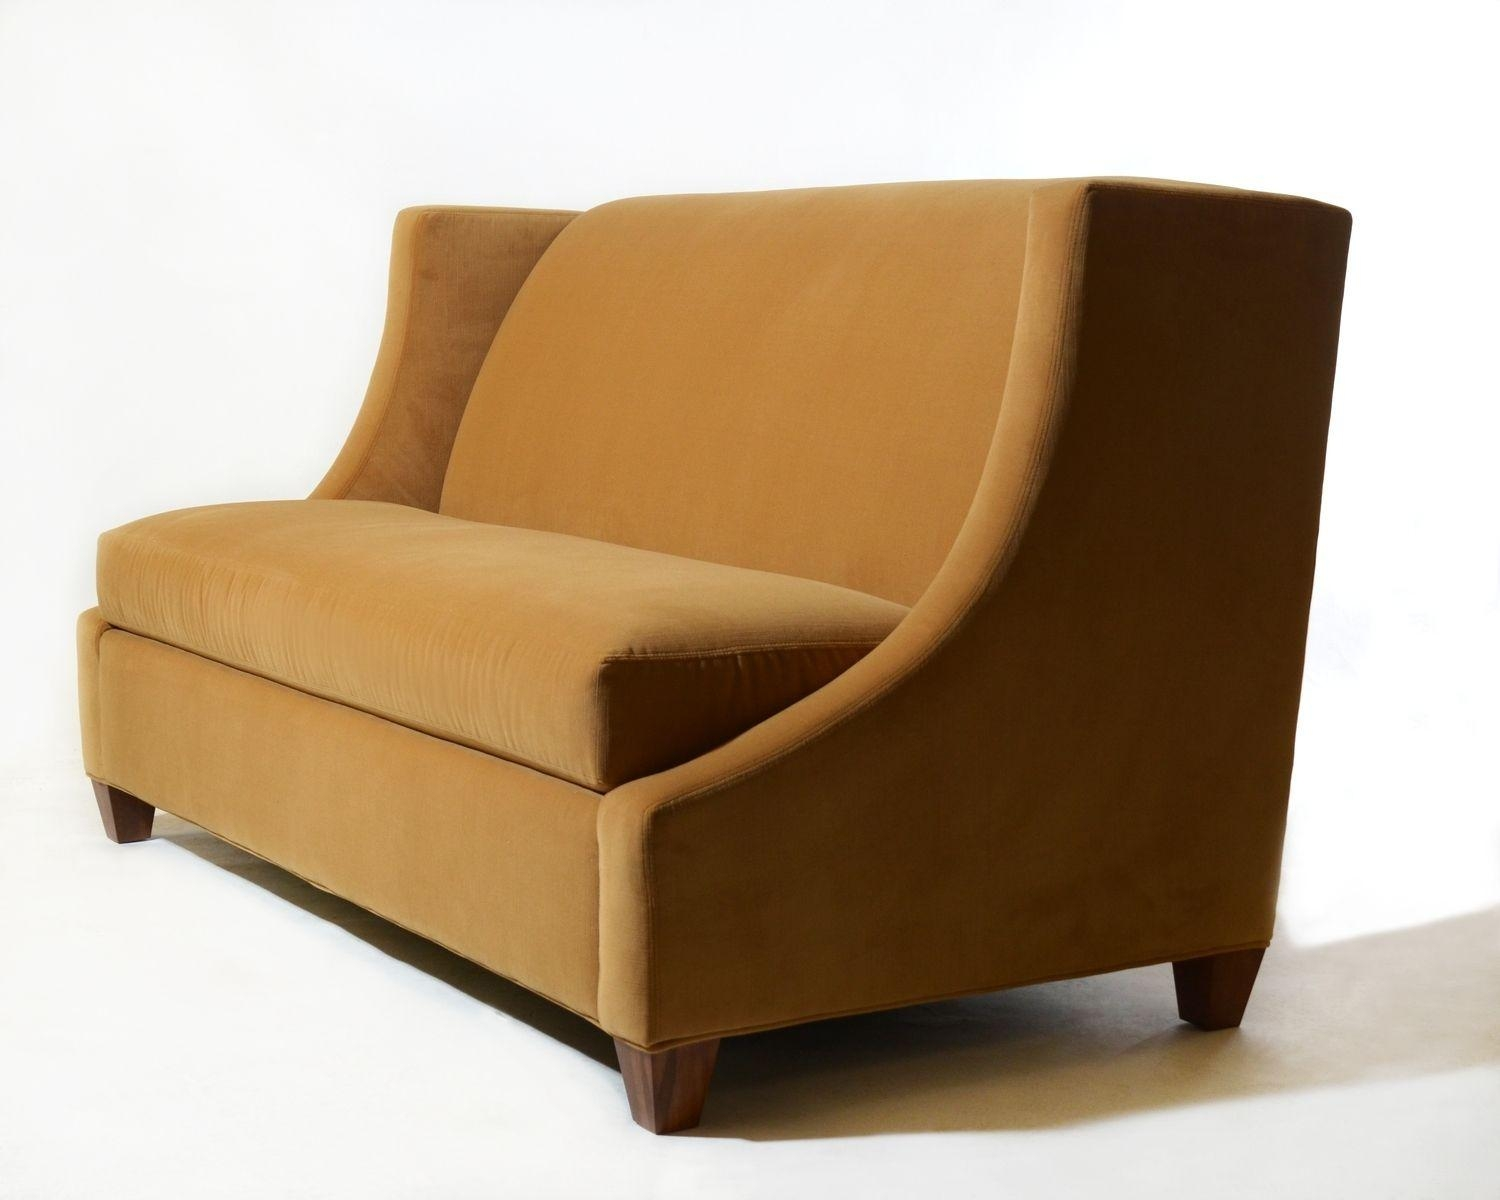 Custom Sofas | Sectional And Leather Couches | Custommade With Regard To Custom Made Sectional Sofas (Image 7 of 15)